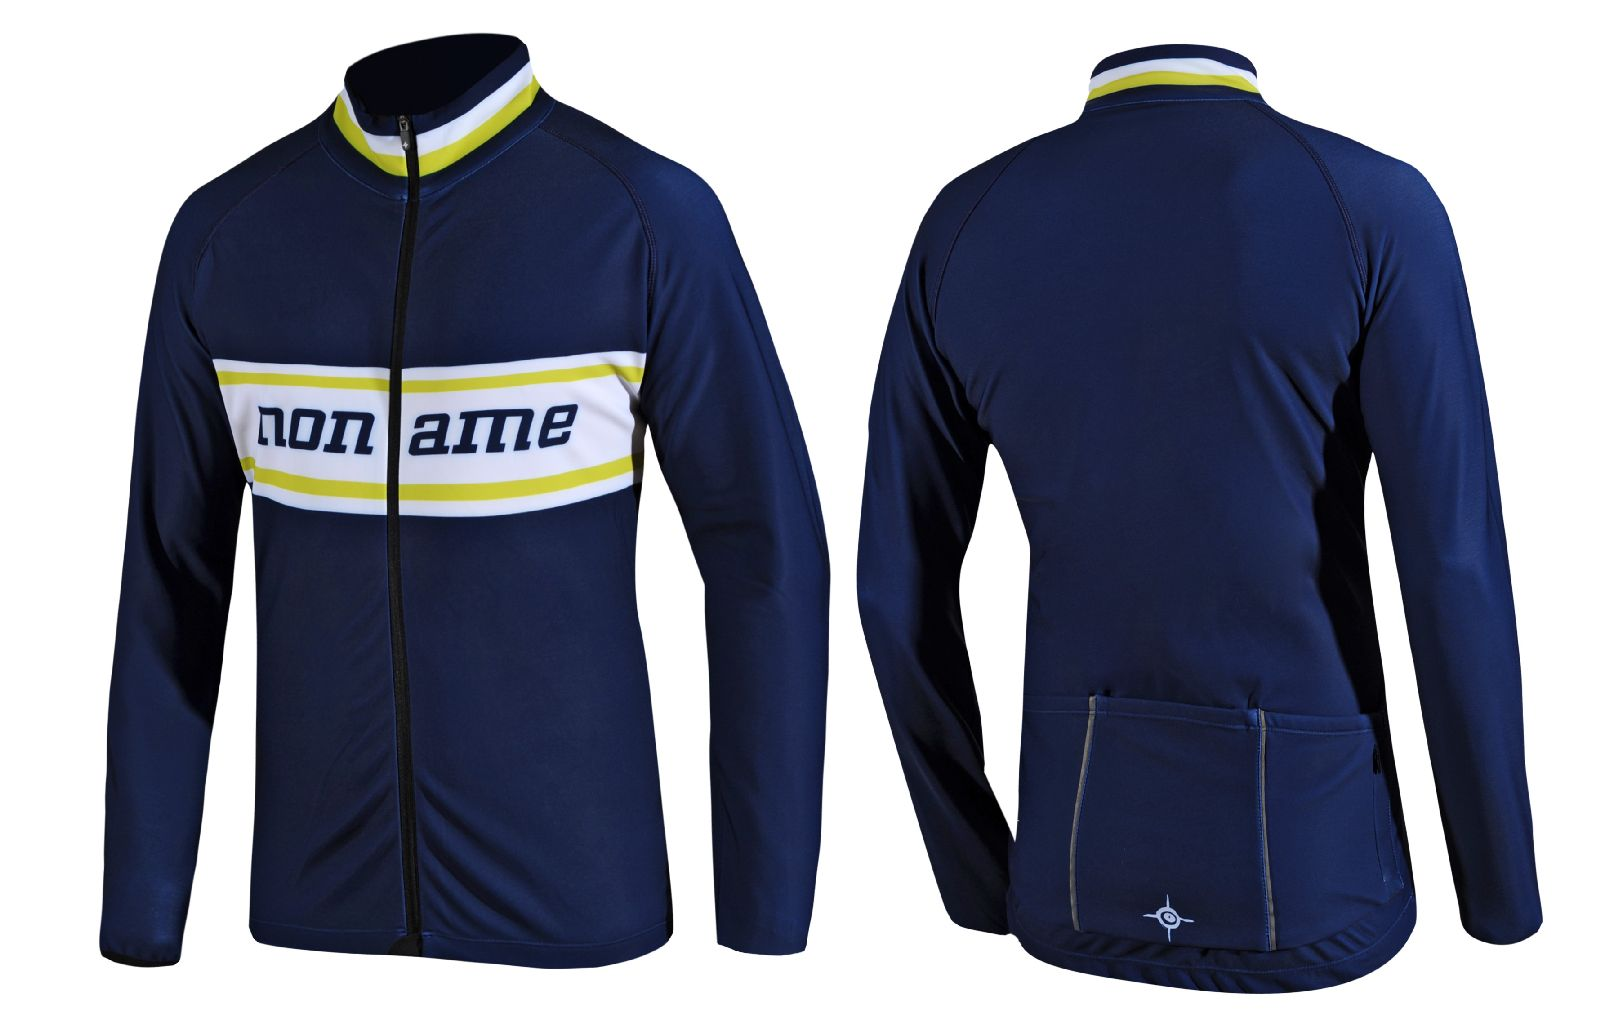 noname jacket blue